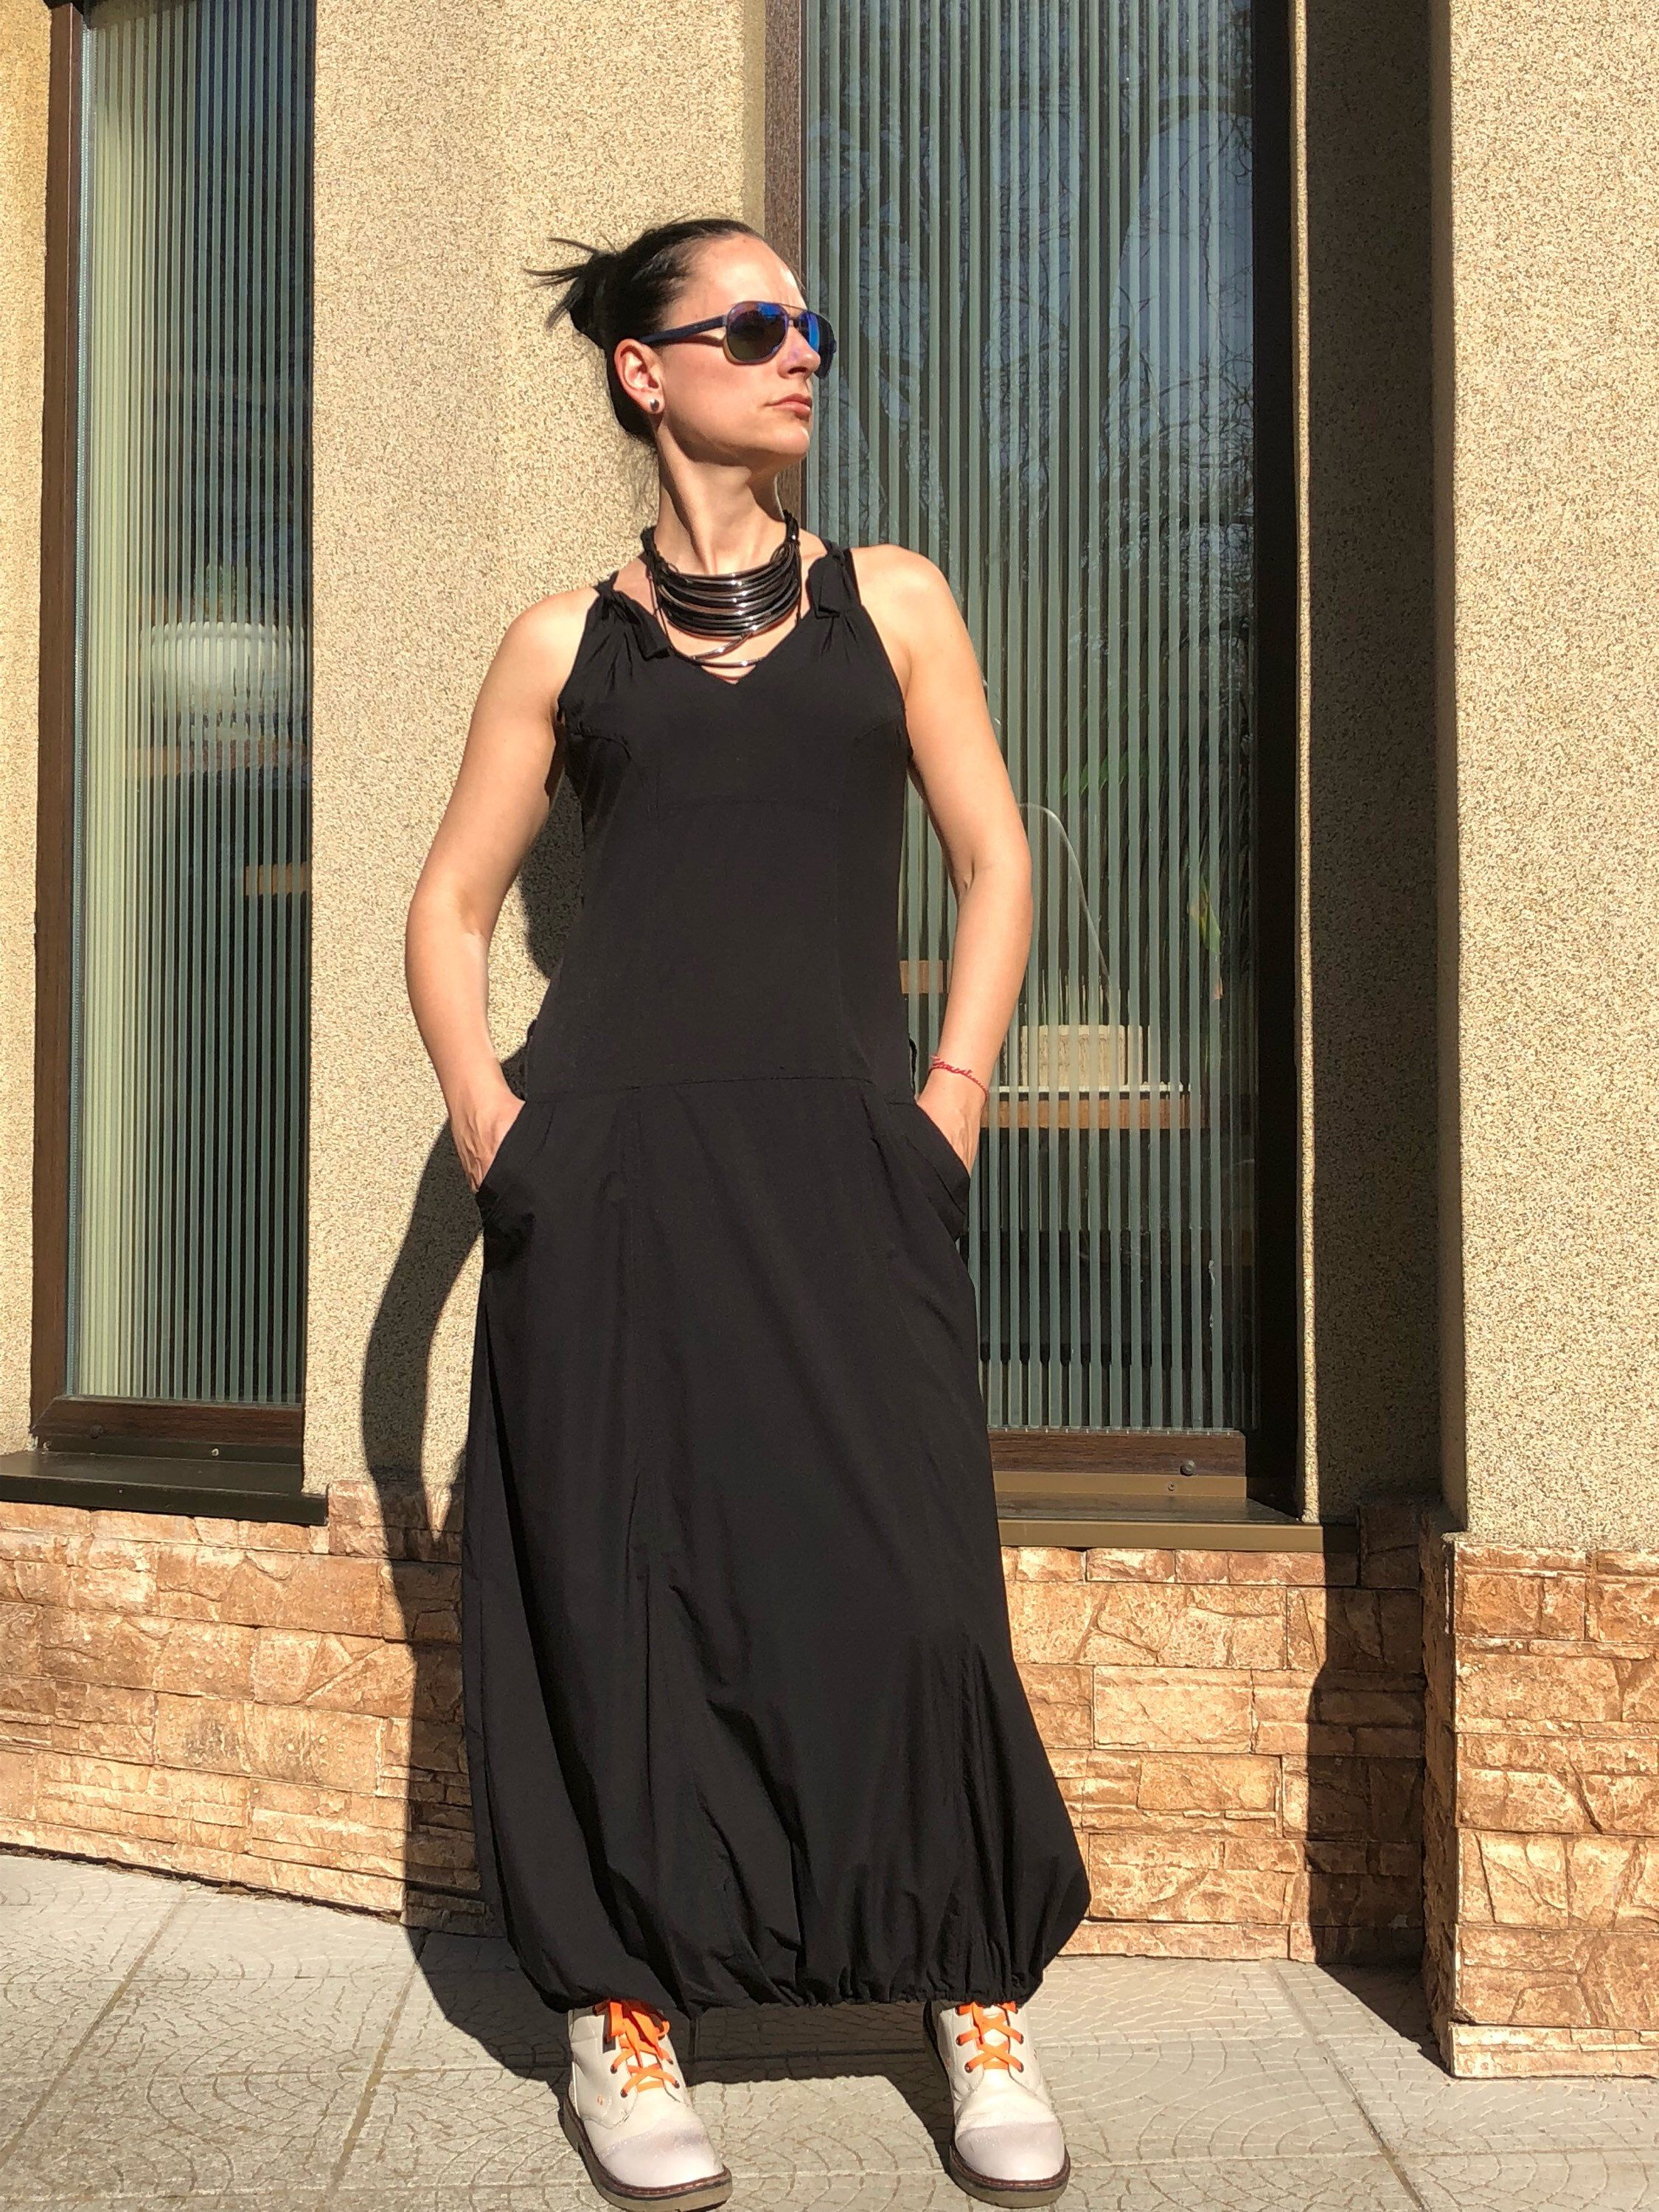 ff3d72bab56 Excited to share the latest addition to my  etsy shop  Black Maxi Dress   Women s Clothing  Clothing for Women  Caftan Maxi Dress  Loose Dress  Plus  Size ...